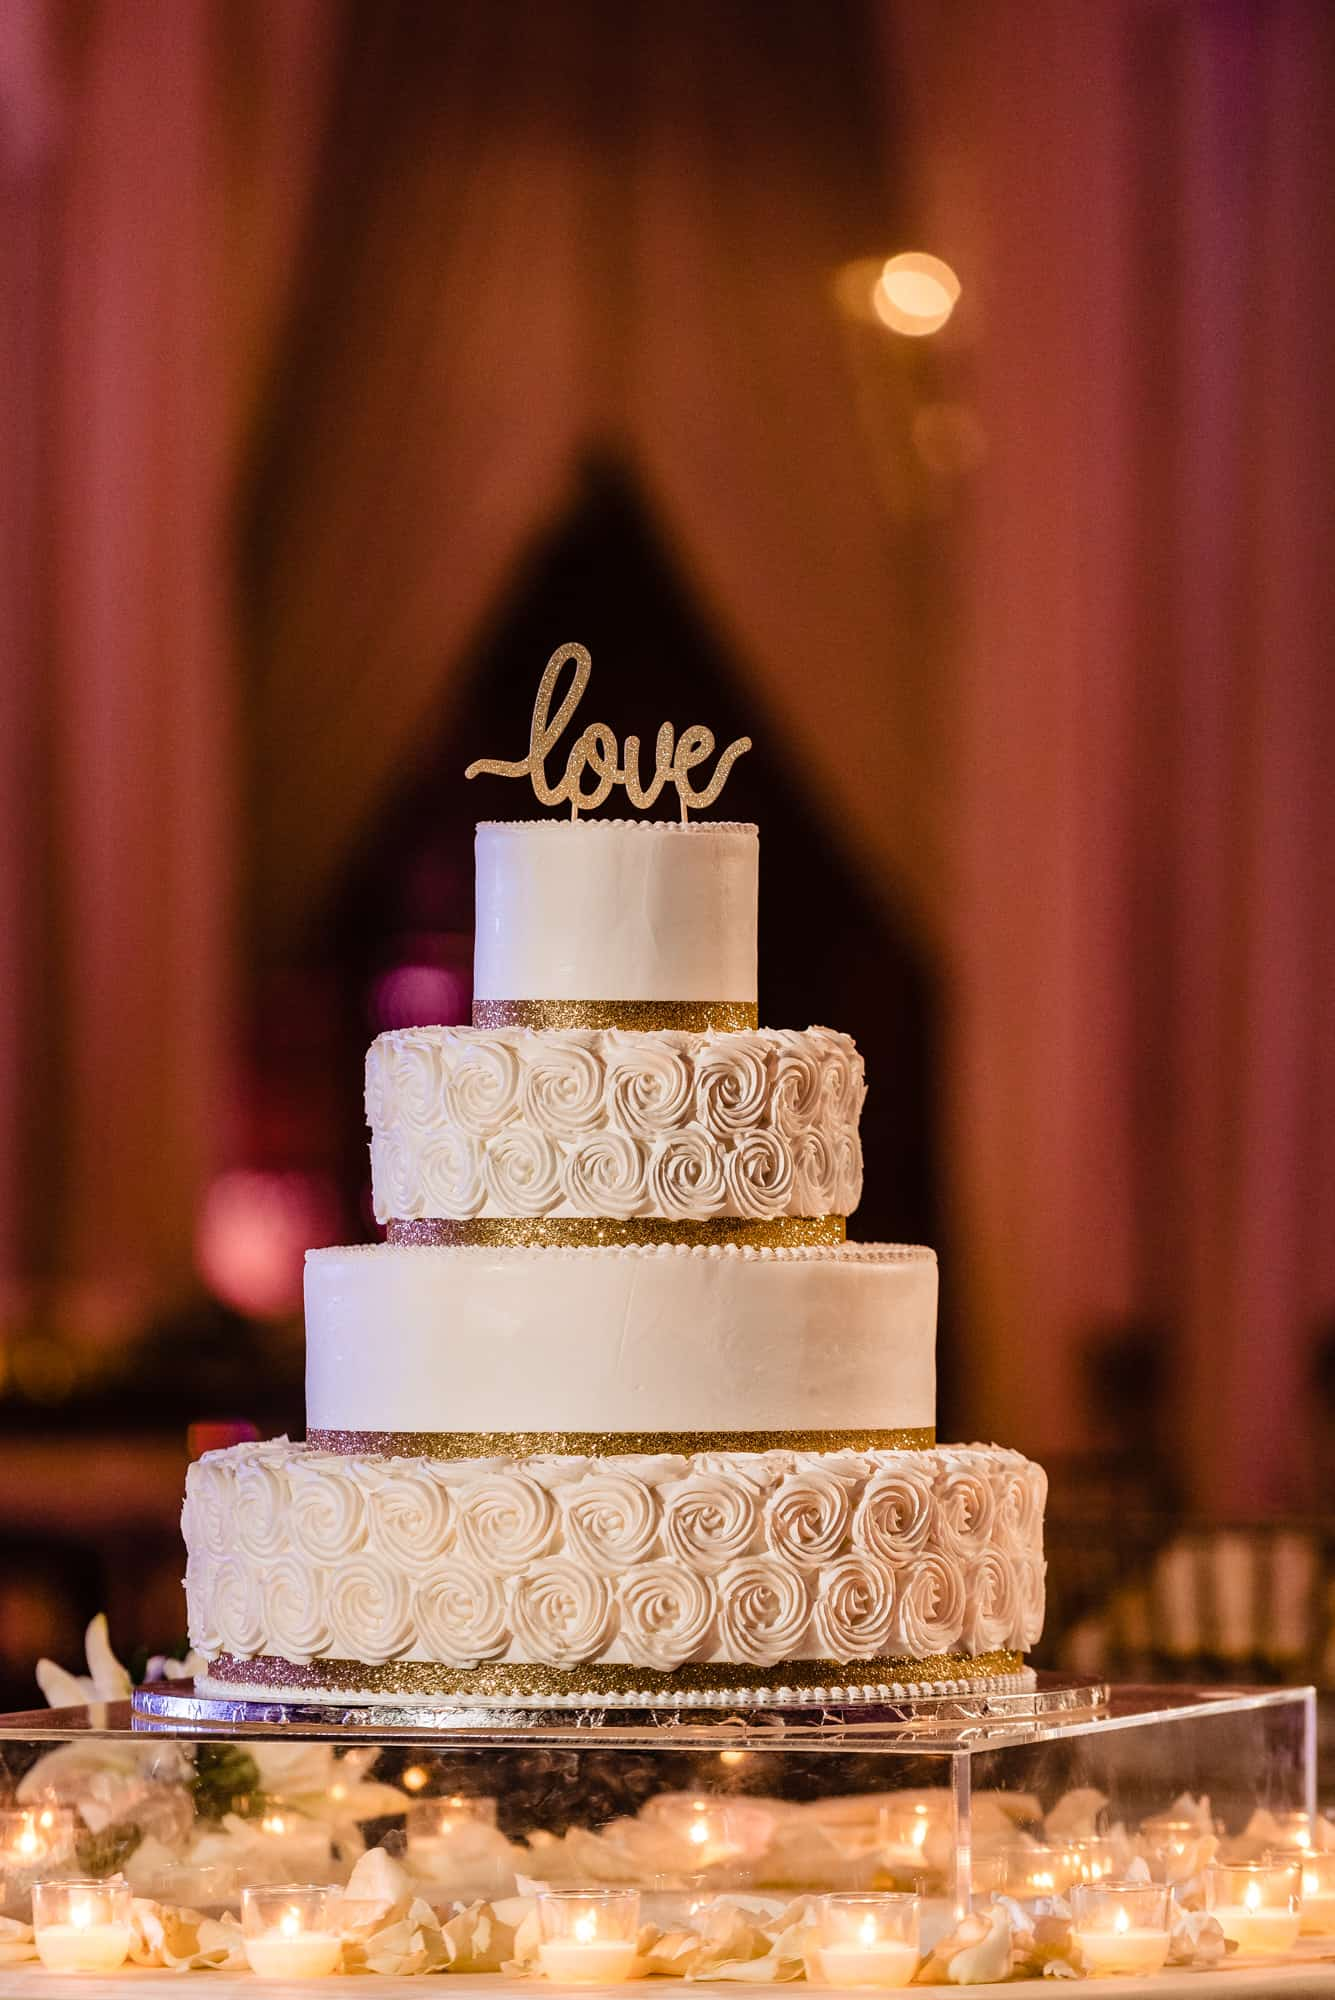 Love topper on wedding cake